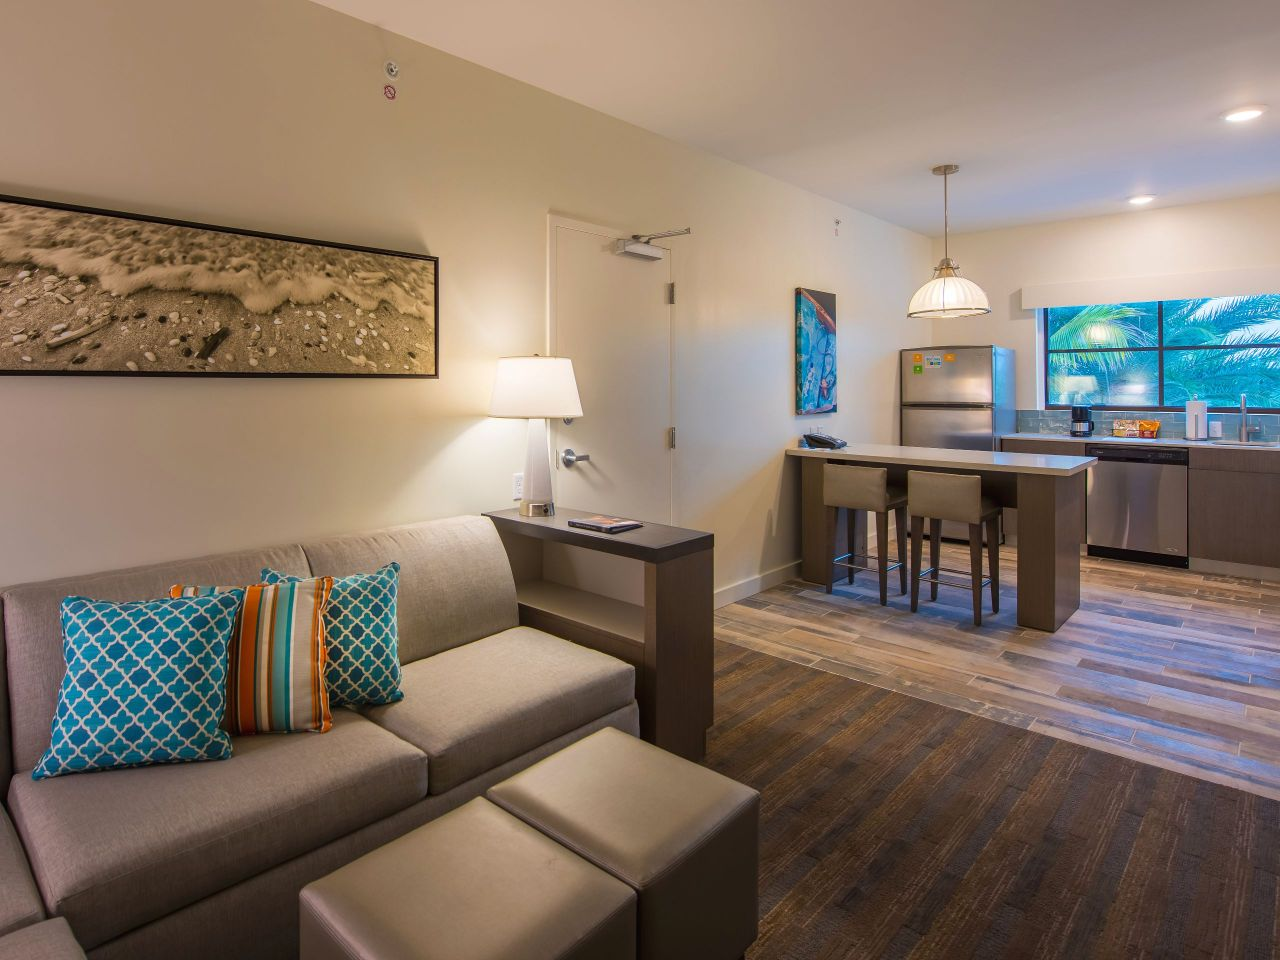 Hyatt House Naples / 5th Avenue One Bedroom Living